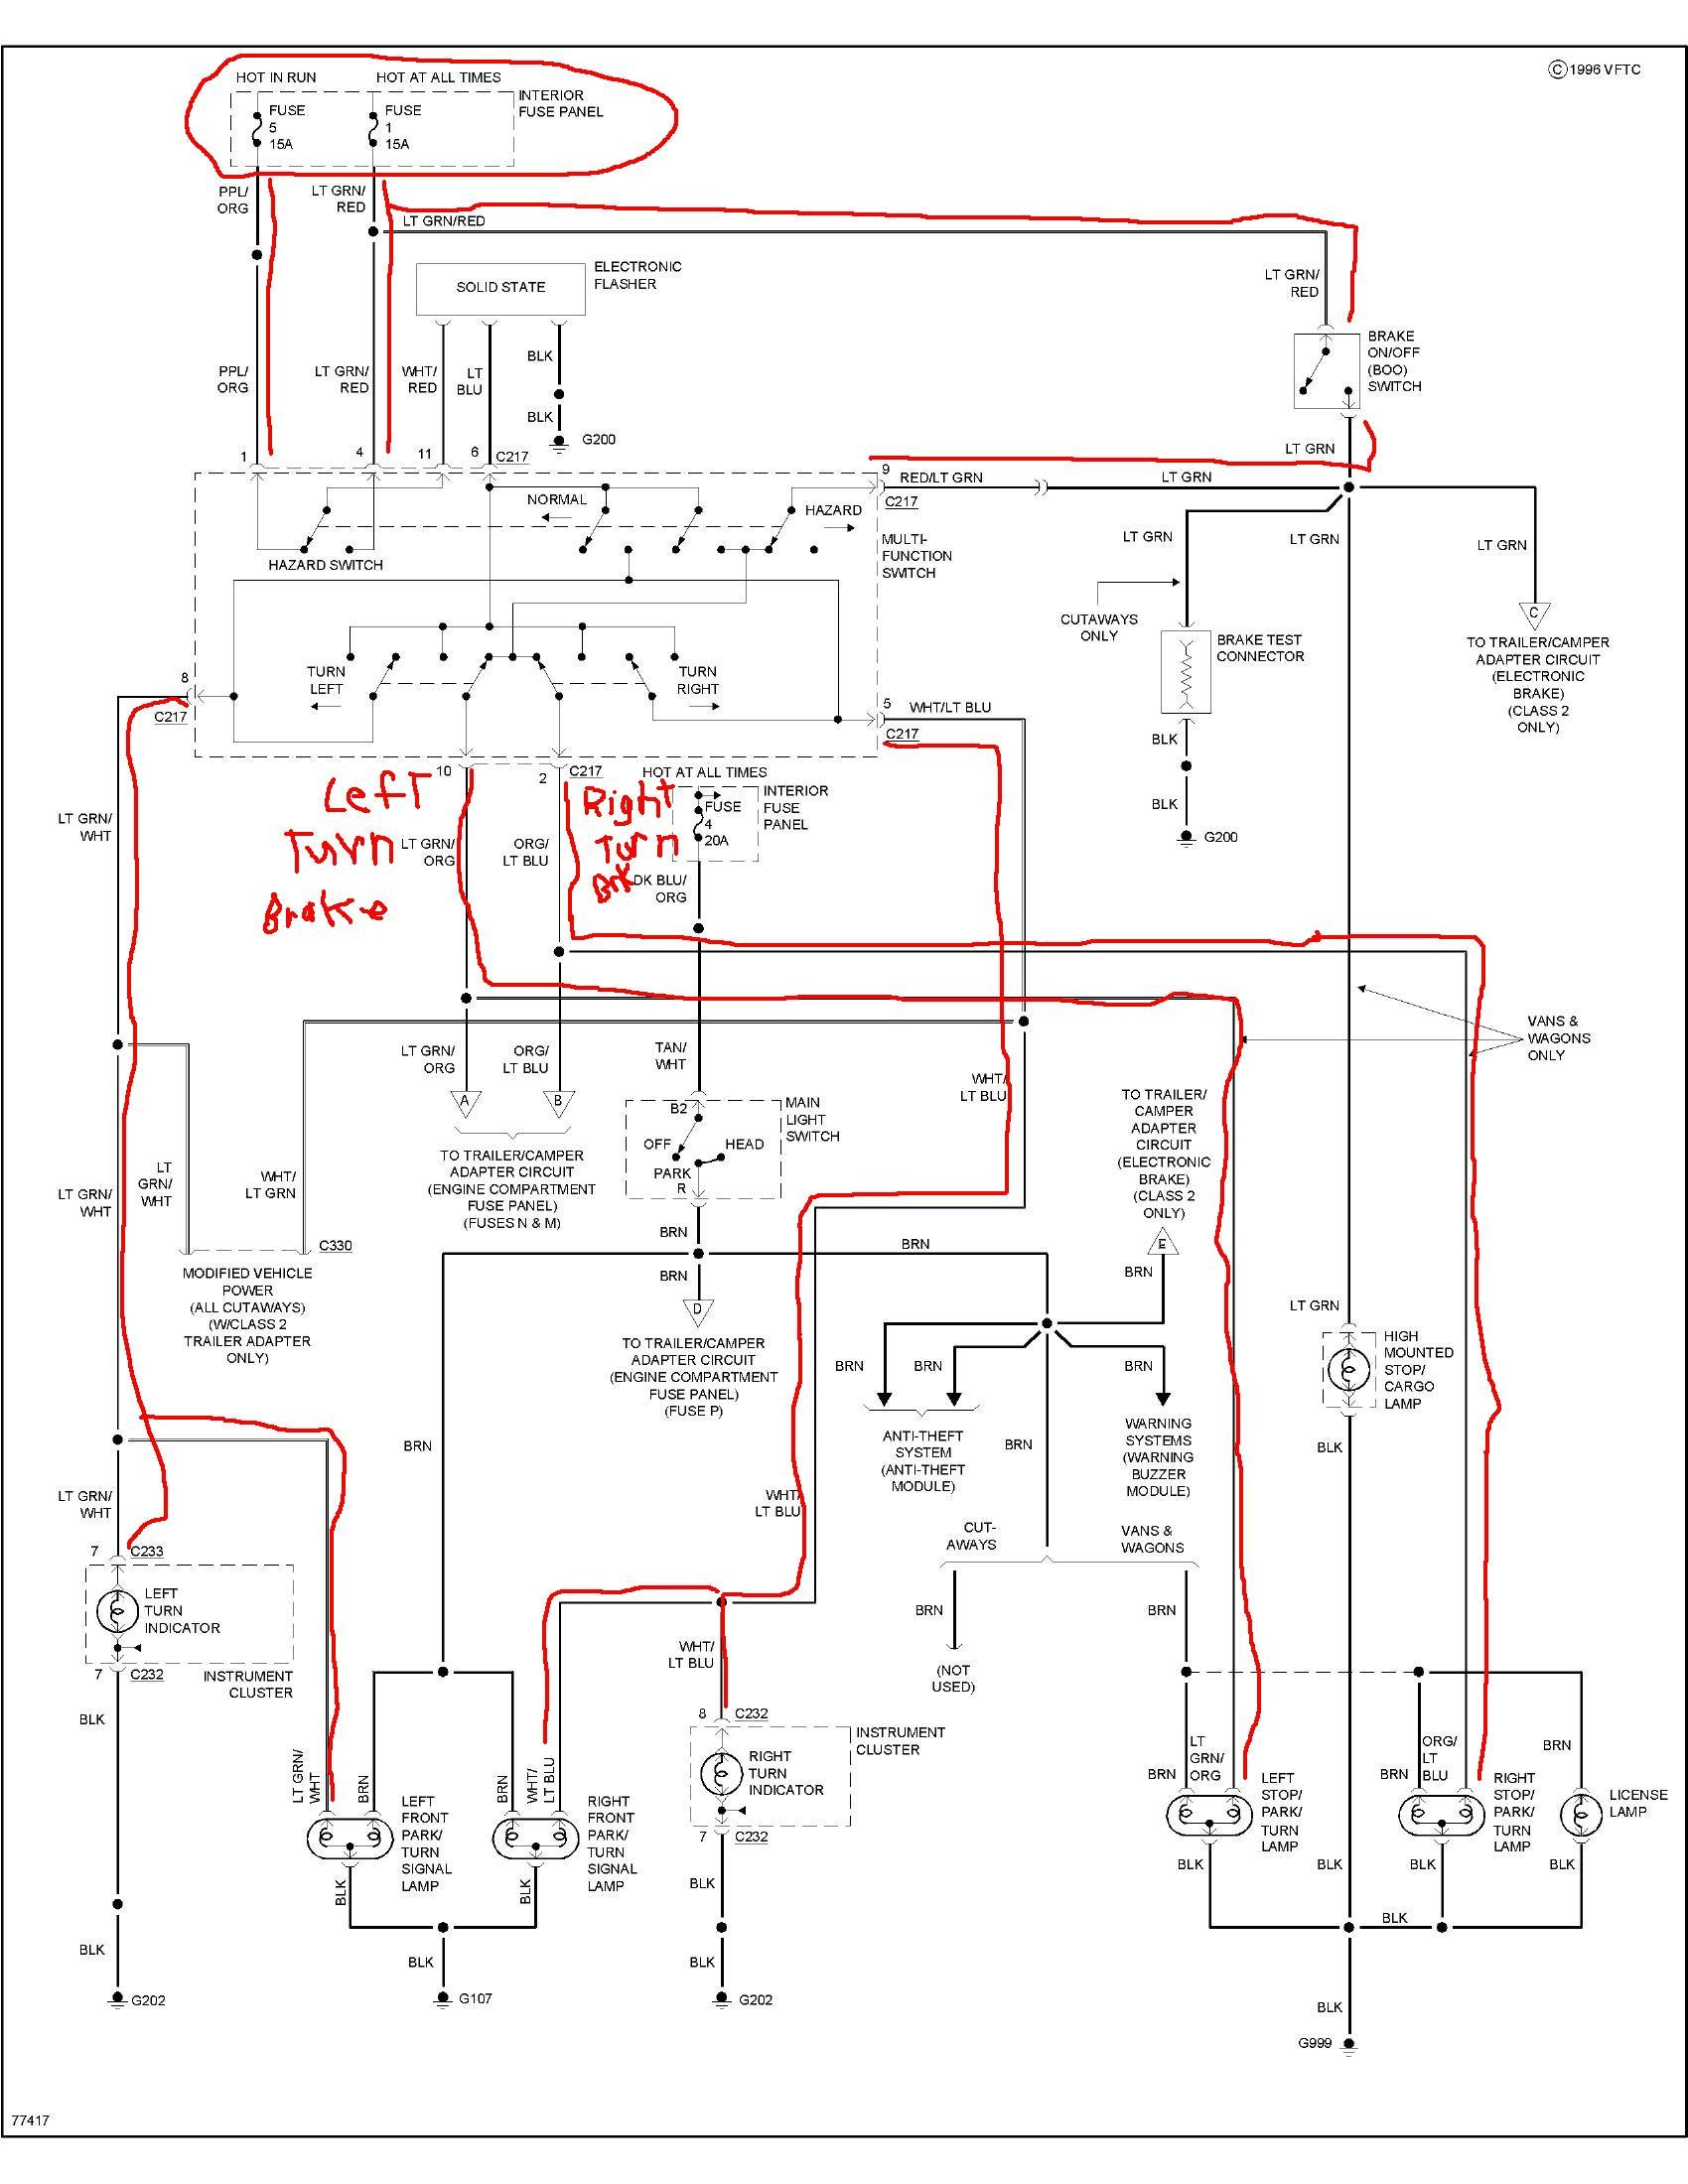 hight resolution of fuel supply system diesel diagram cruisers powerstroke systems along with diagrams and photos diesel fuel kind fuel system flow diagram courtesy mazda